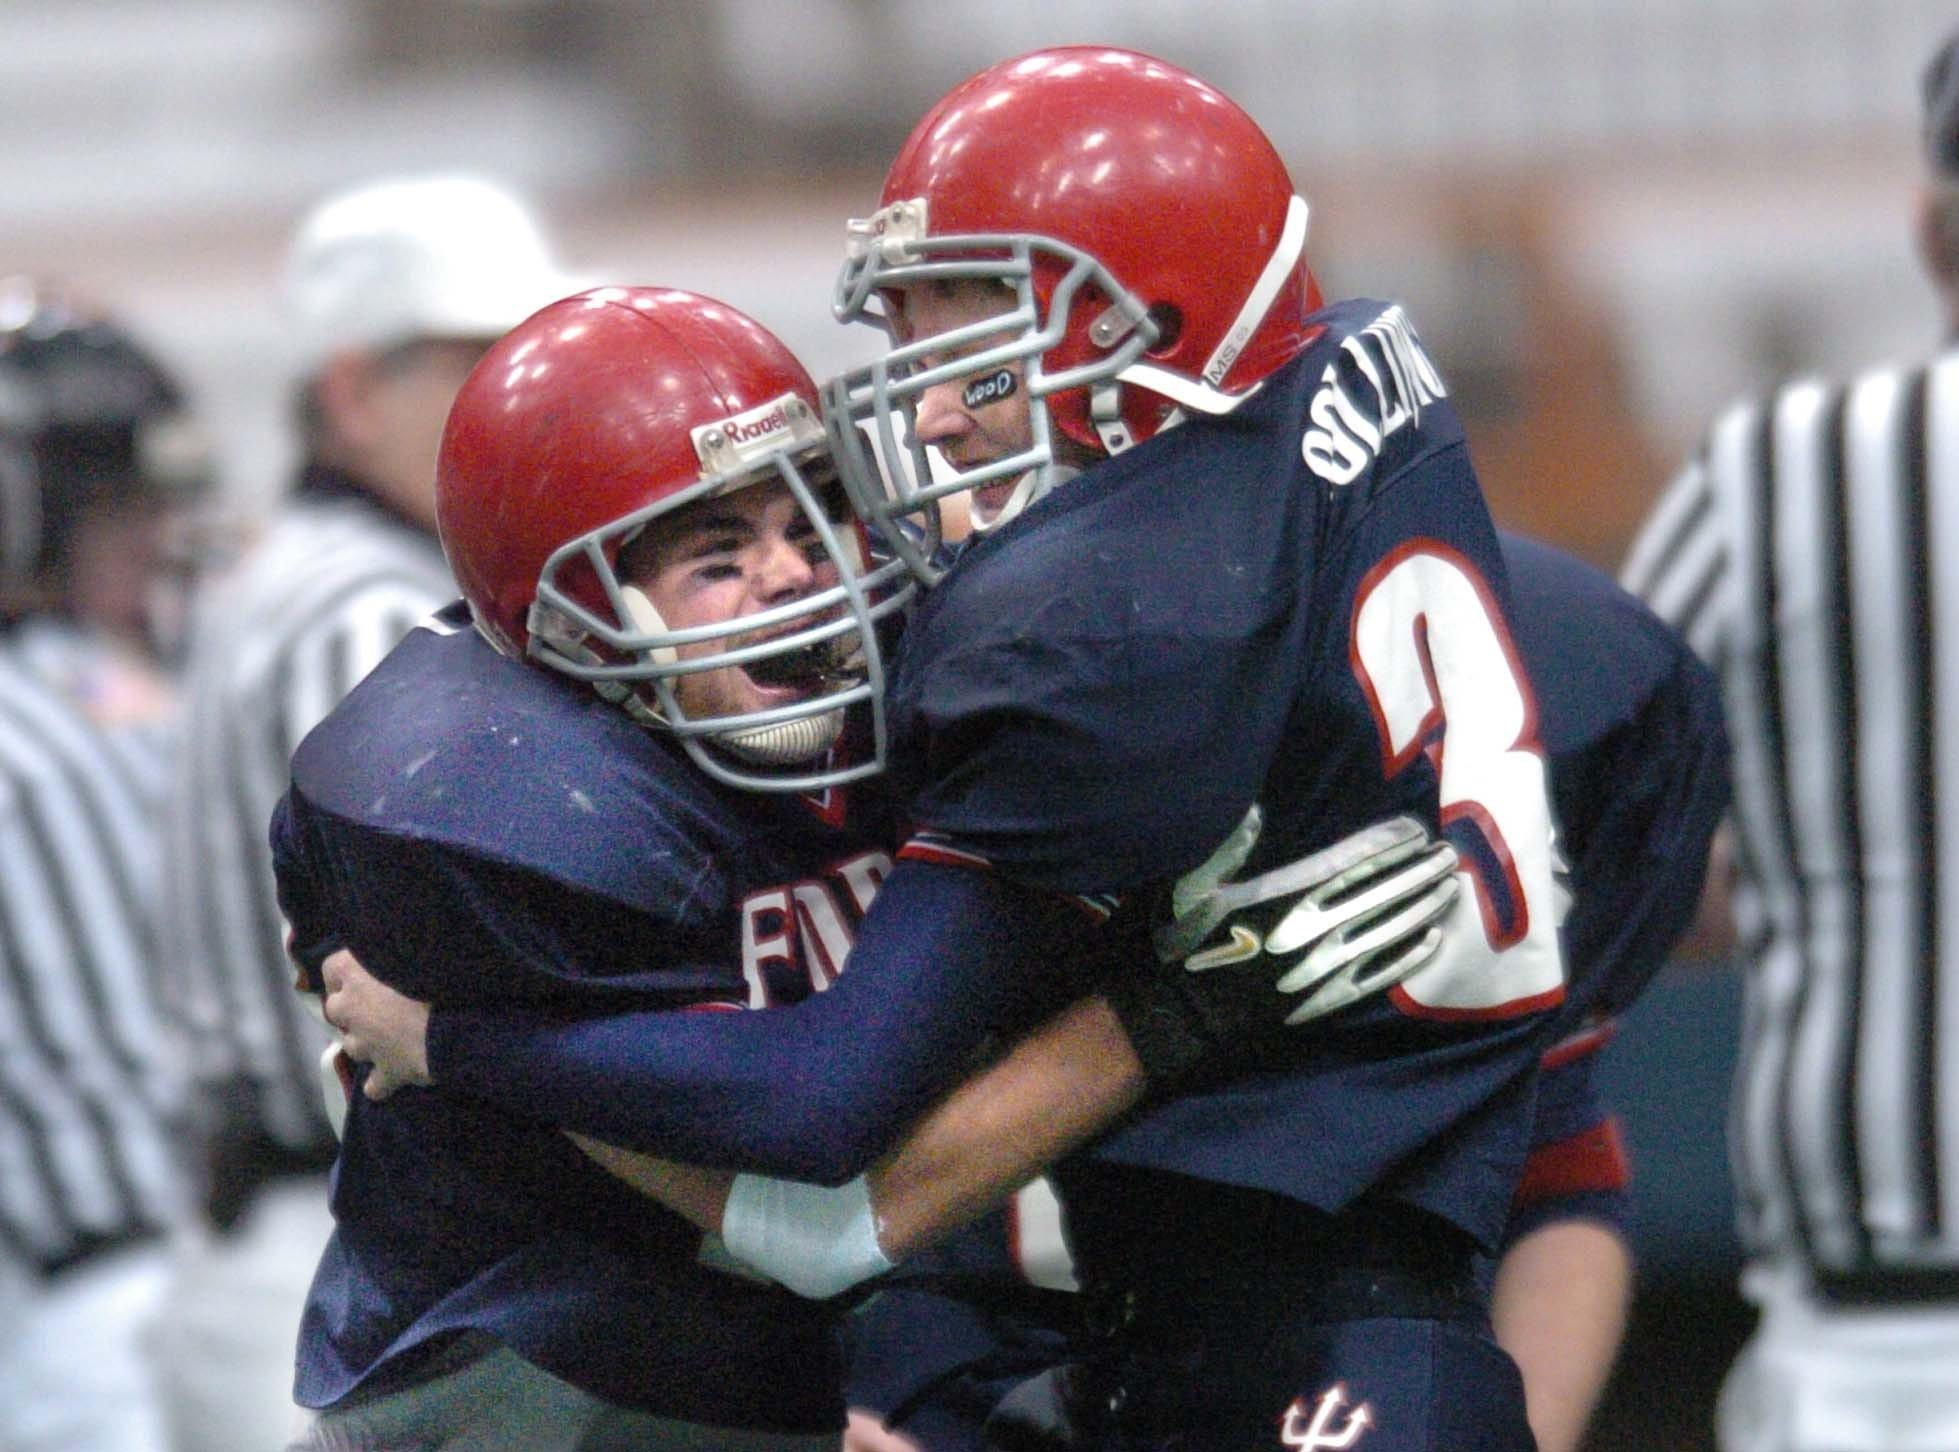 Chenango Forks' Luke Parga, left, and Ben Collingwood celebrate after Parga recovered an onside kick to start the second half in the Blue Devils' 48-0 win over Rye in the Class B title game.